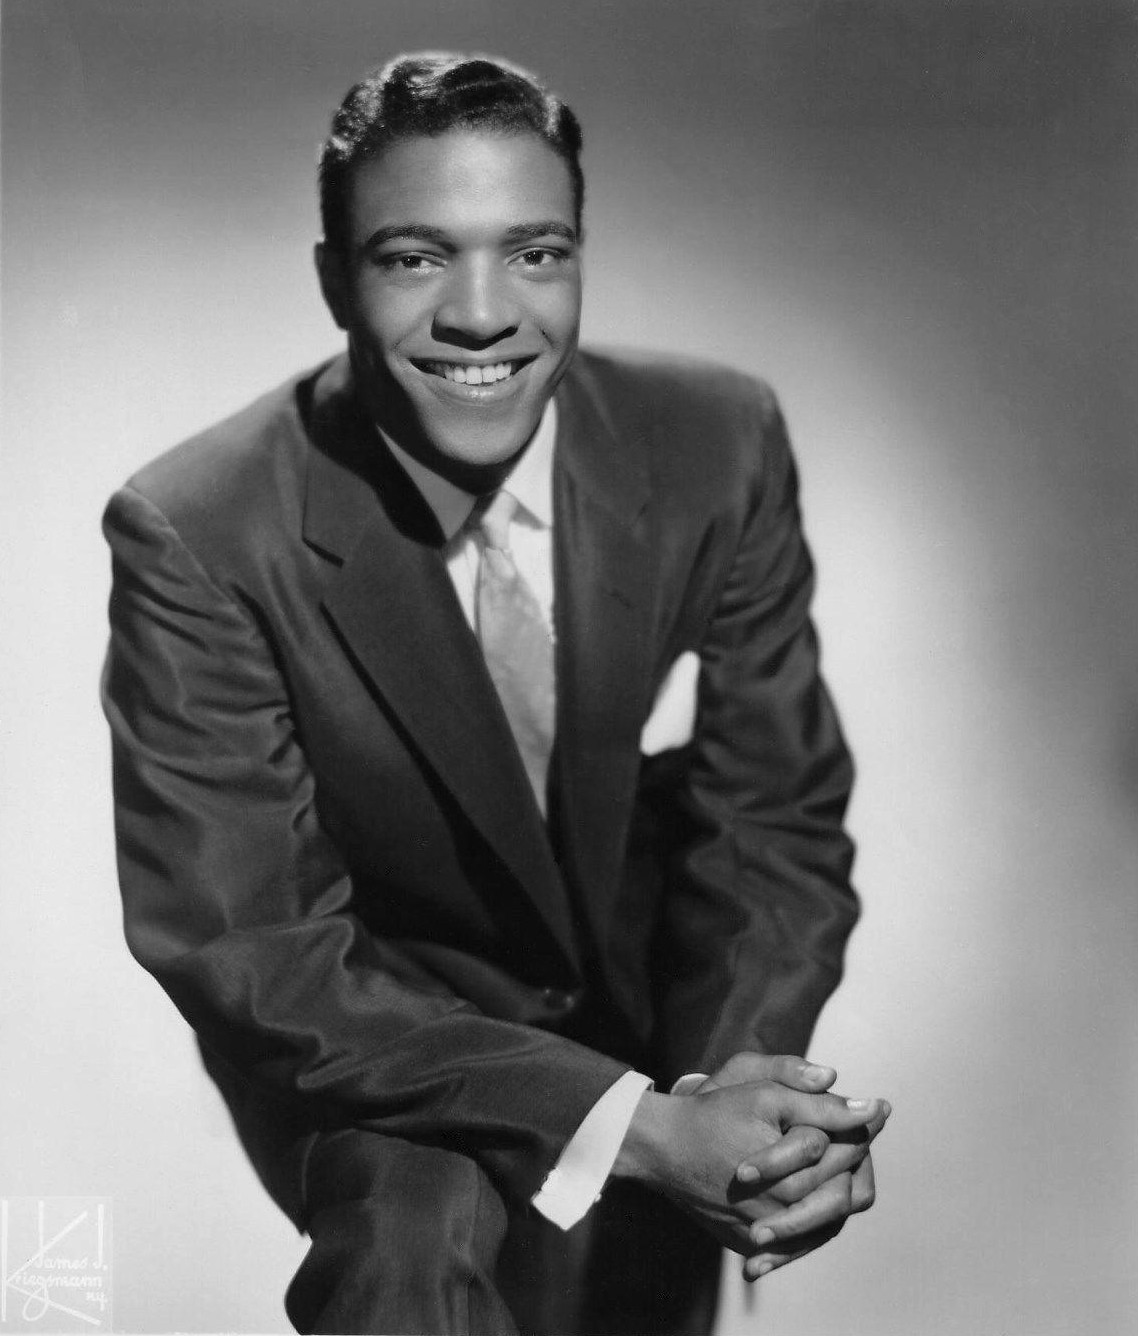 Photo of Clyde McPhatter taken on February 12, 1959, by Marvin Drager for General Artists Corporation.